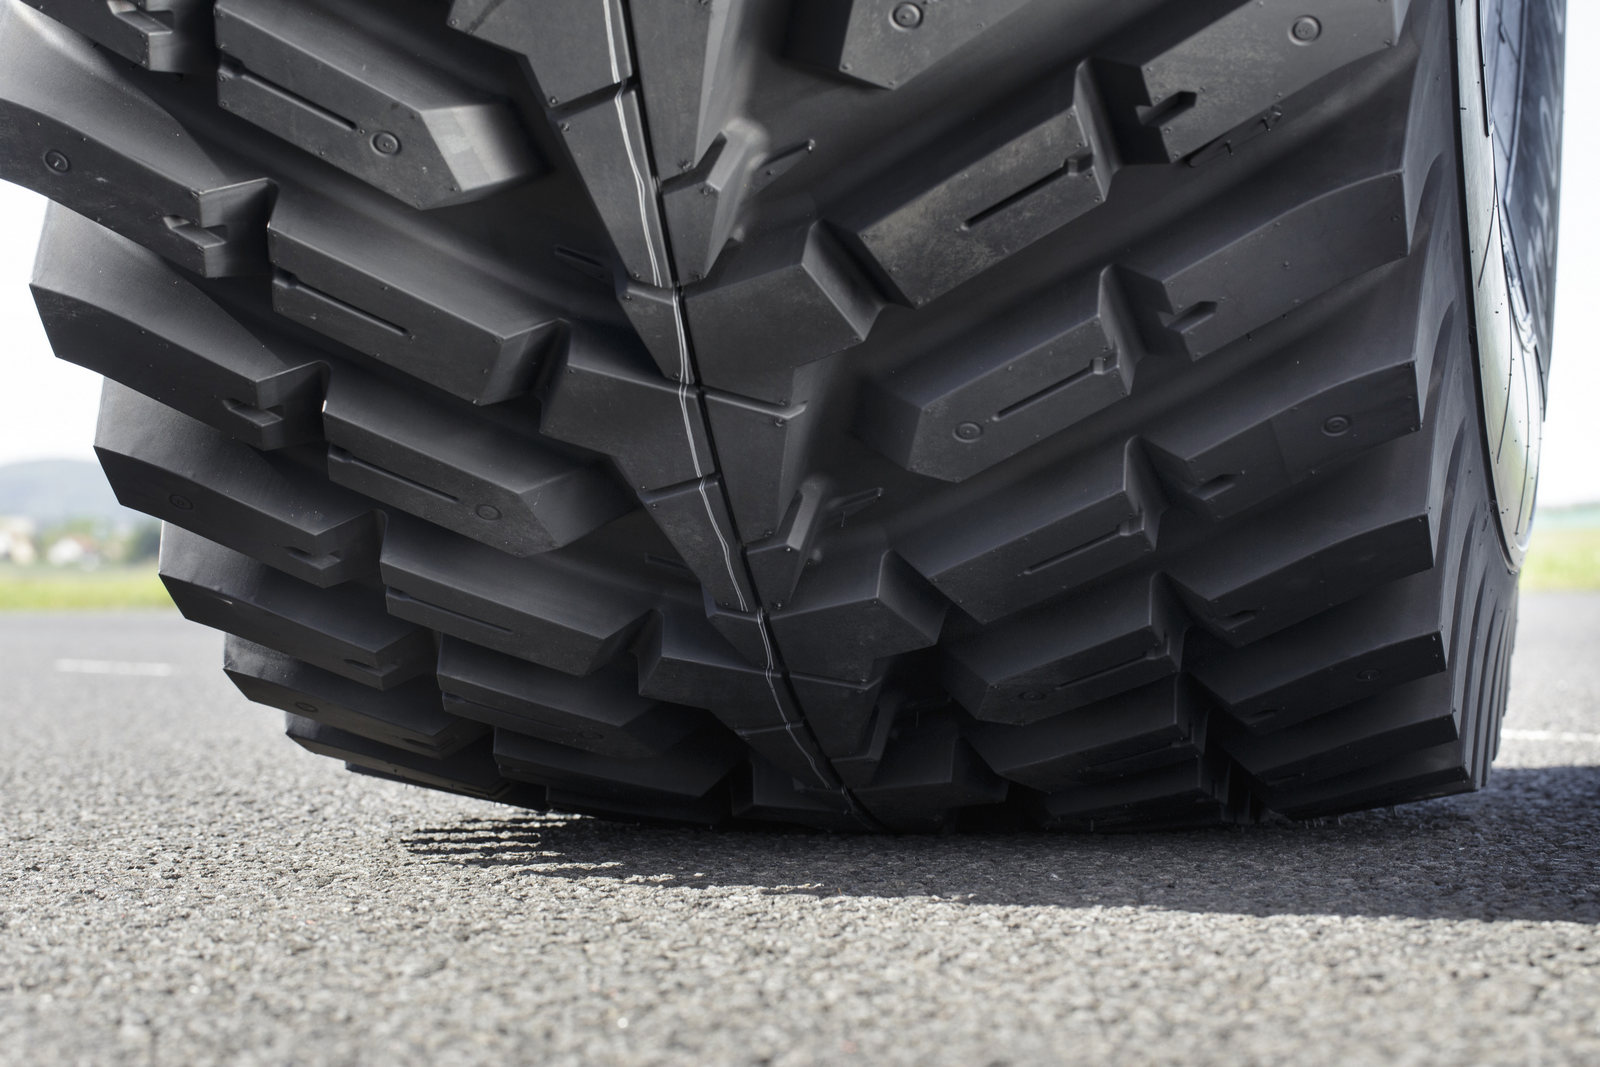 Michelin has unveiled a new generation of agricultural tyre – the RoadBib – co-designed with agricultural contractors